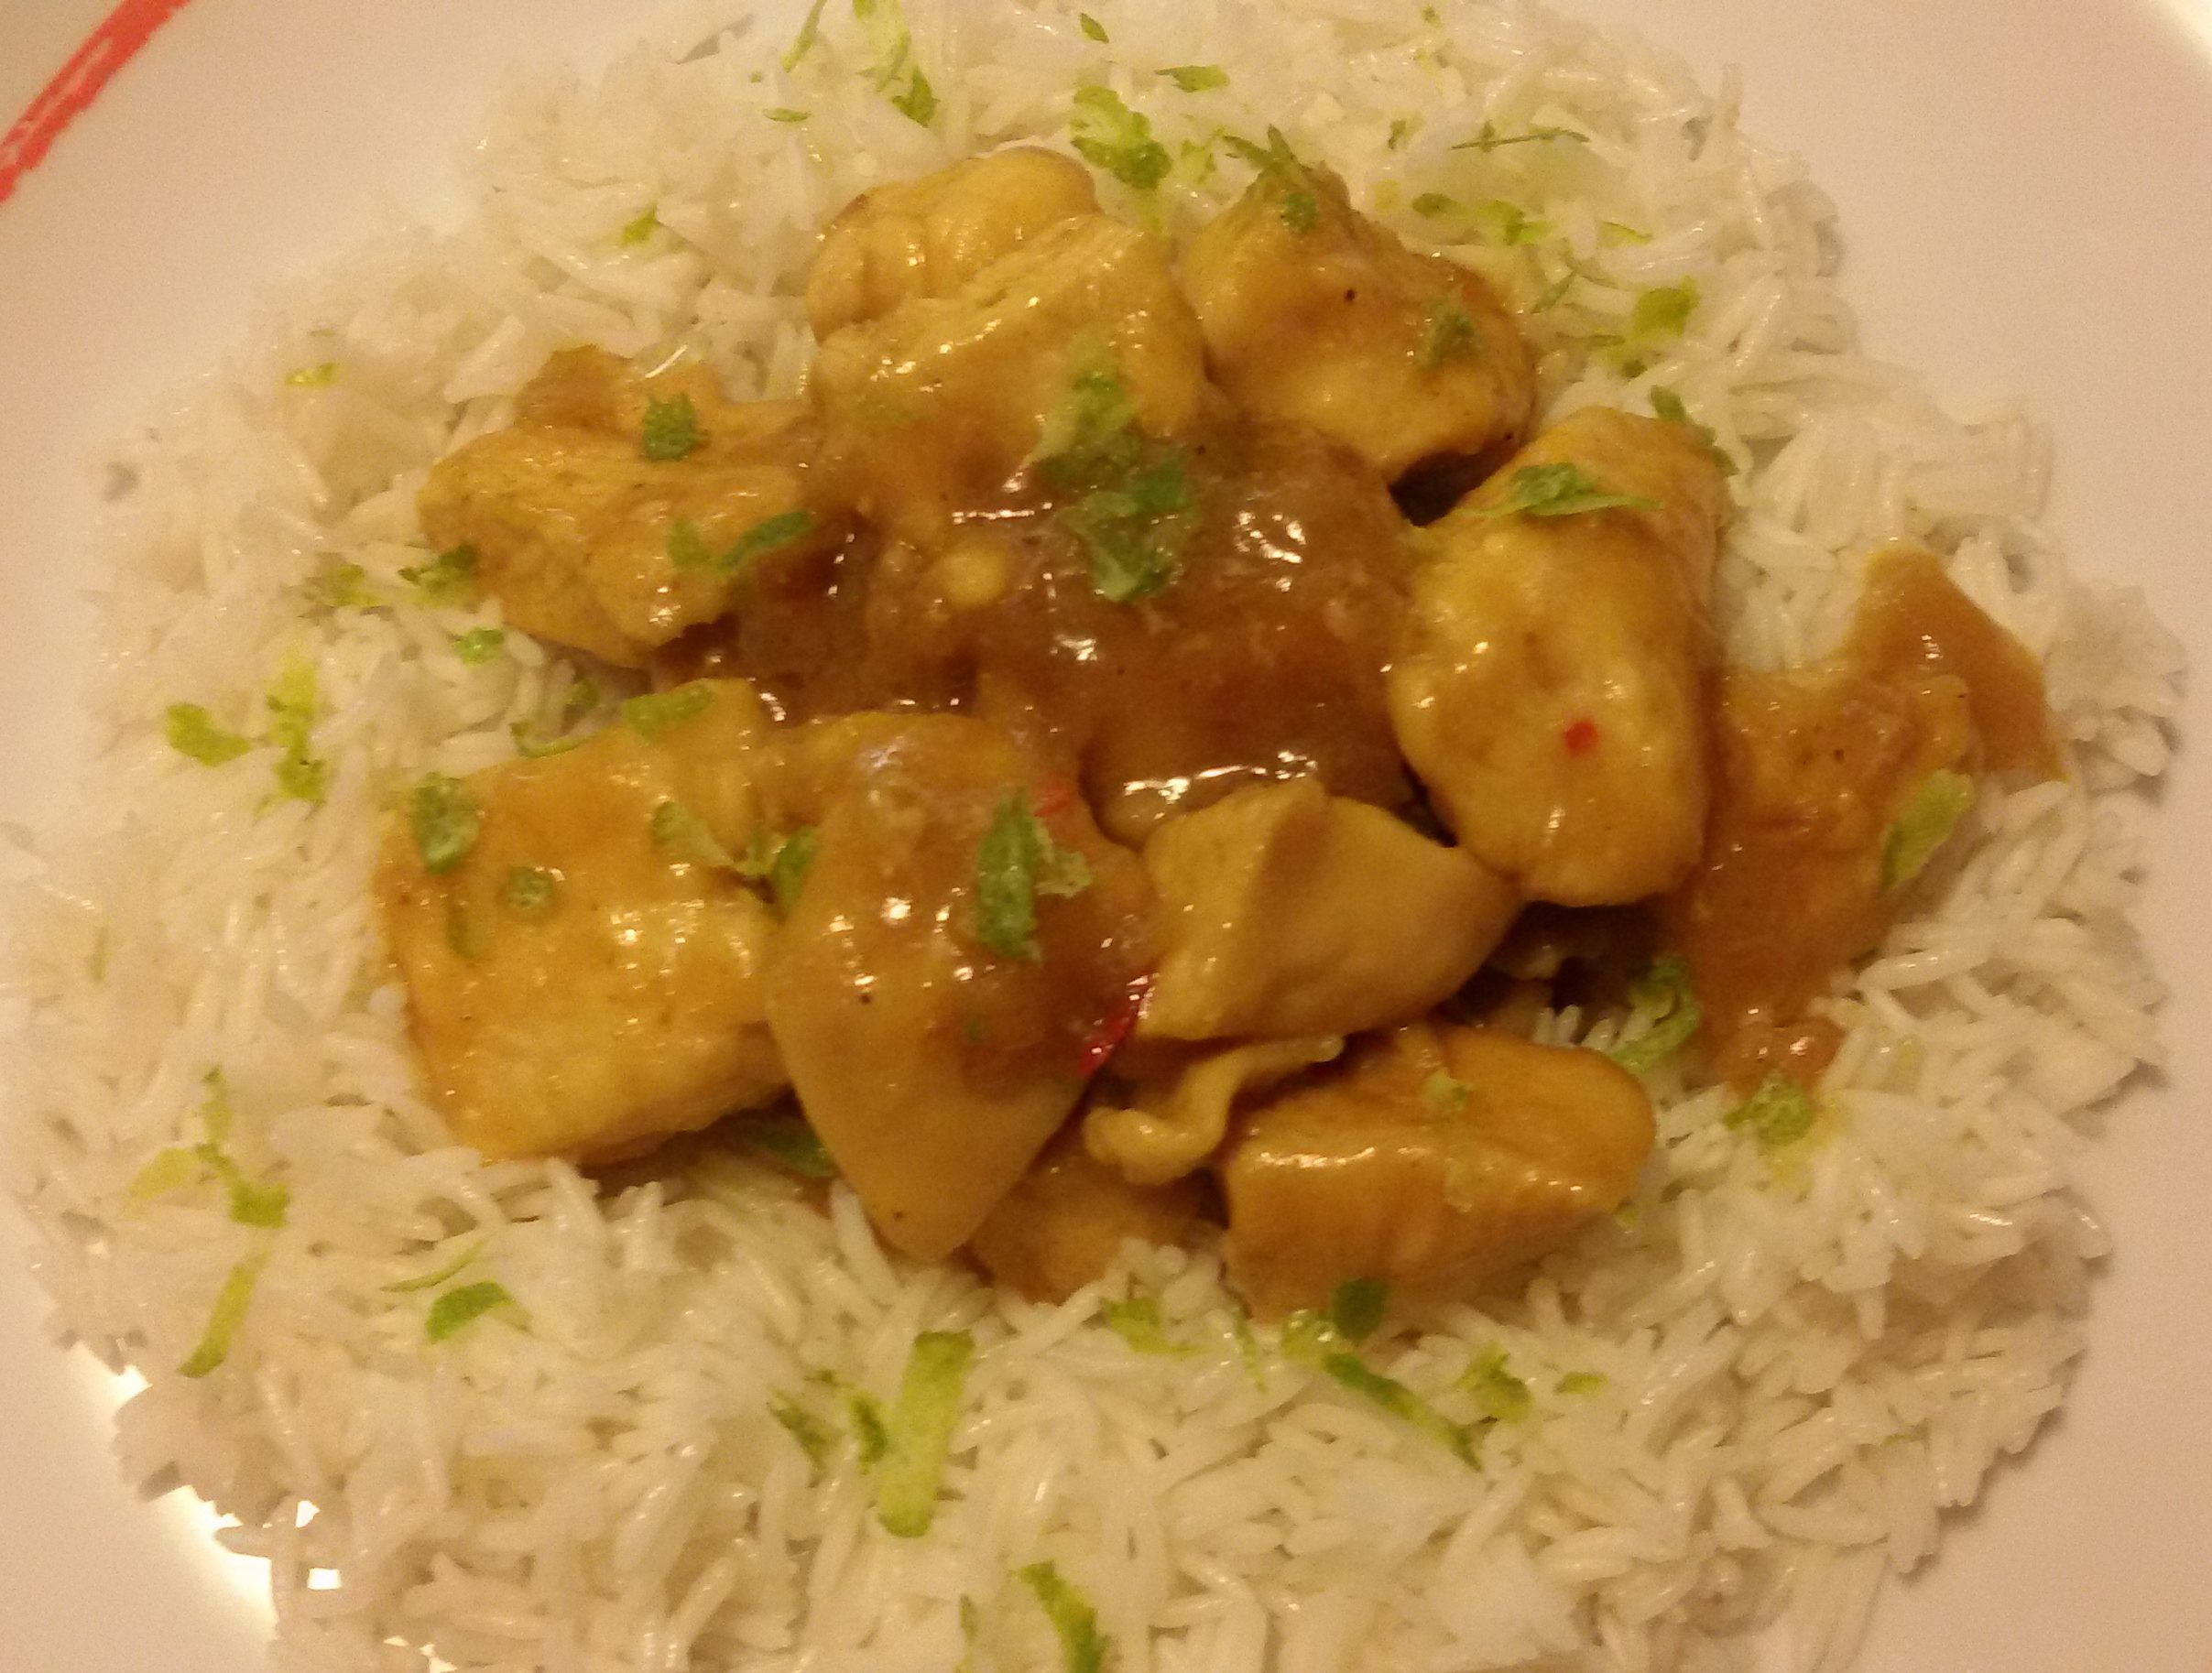 Pollo al curry, lime e latte di cocco con riso basmati